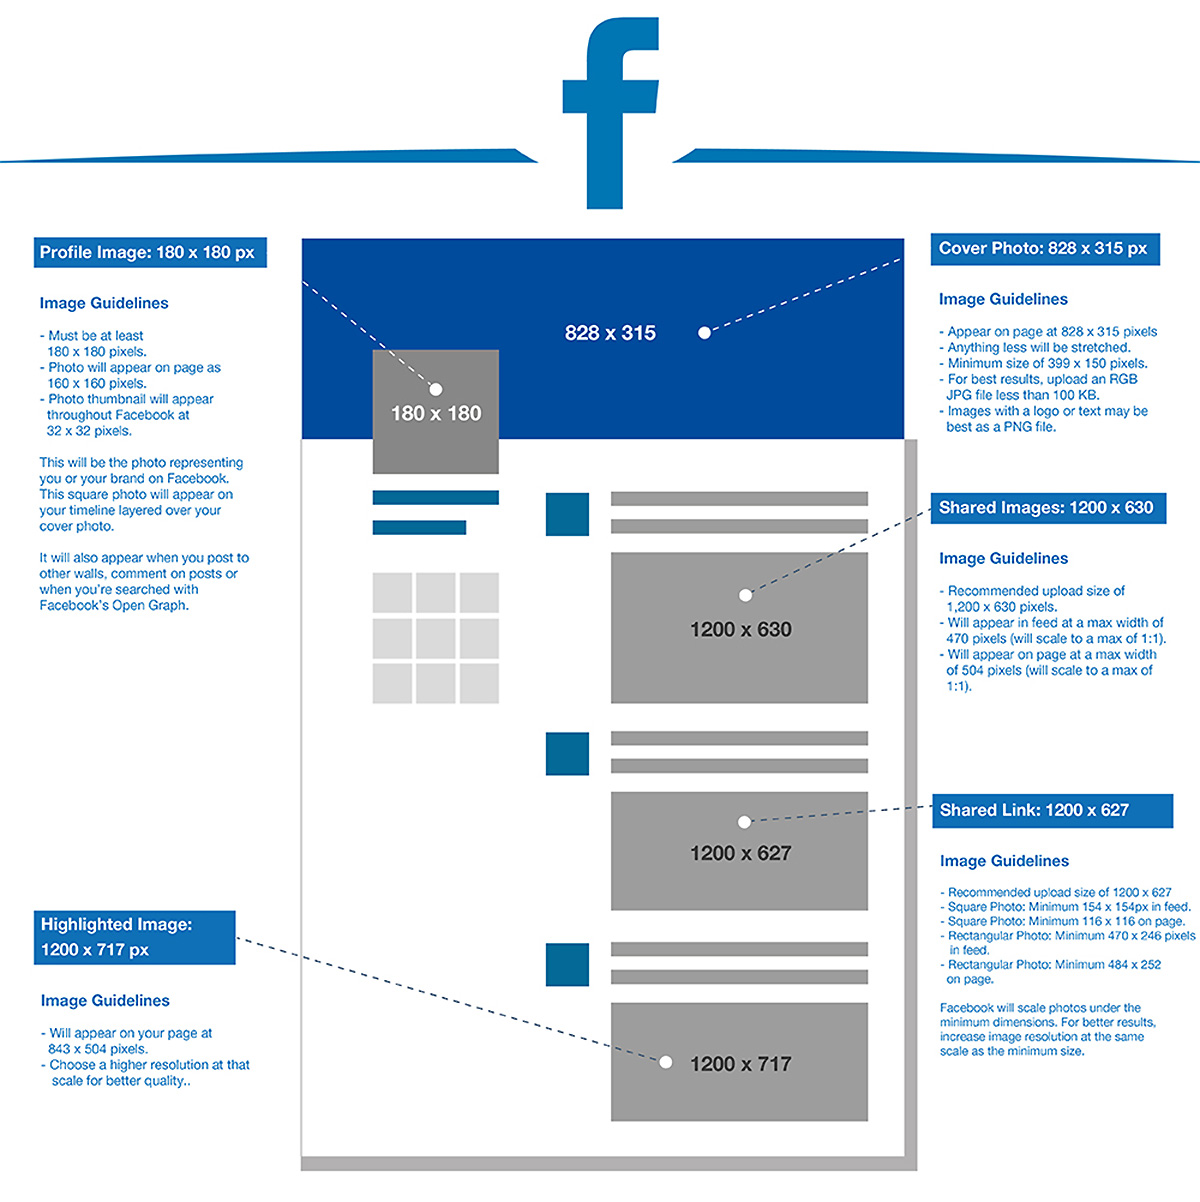 Social Media Image Sizing Guide SocialMediaSize-Facebook (© James D. DeCamp | http://JamesDeCamp.com | 614-367-6366)